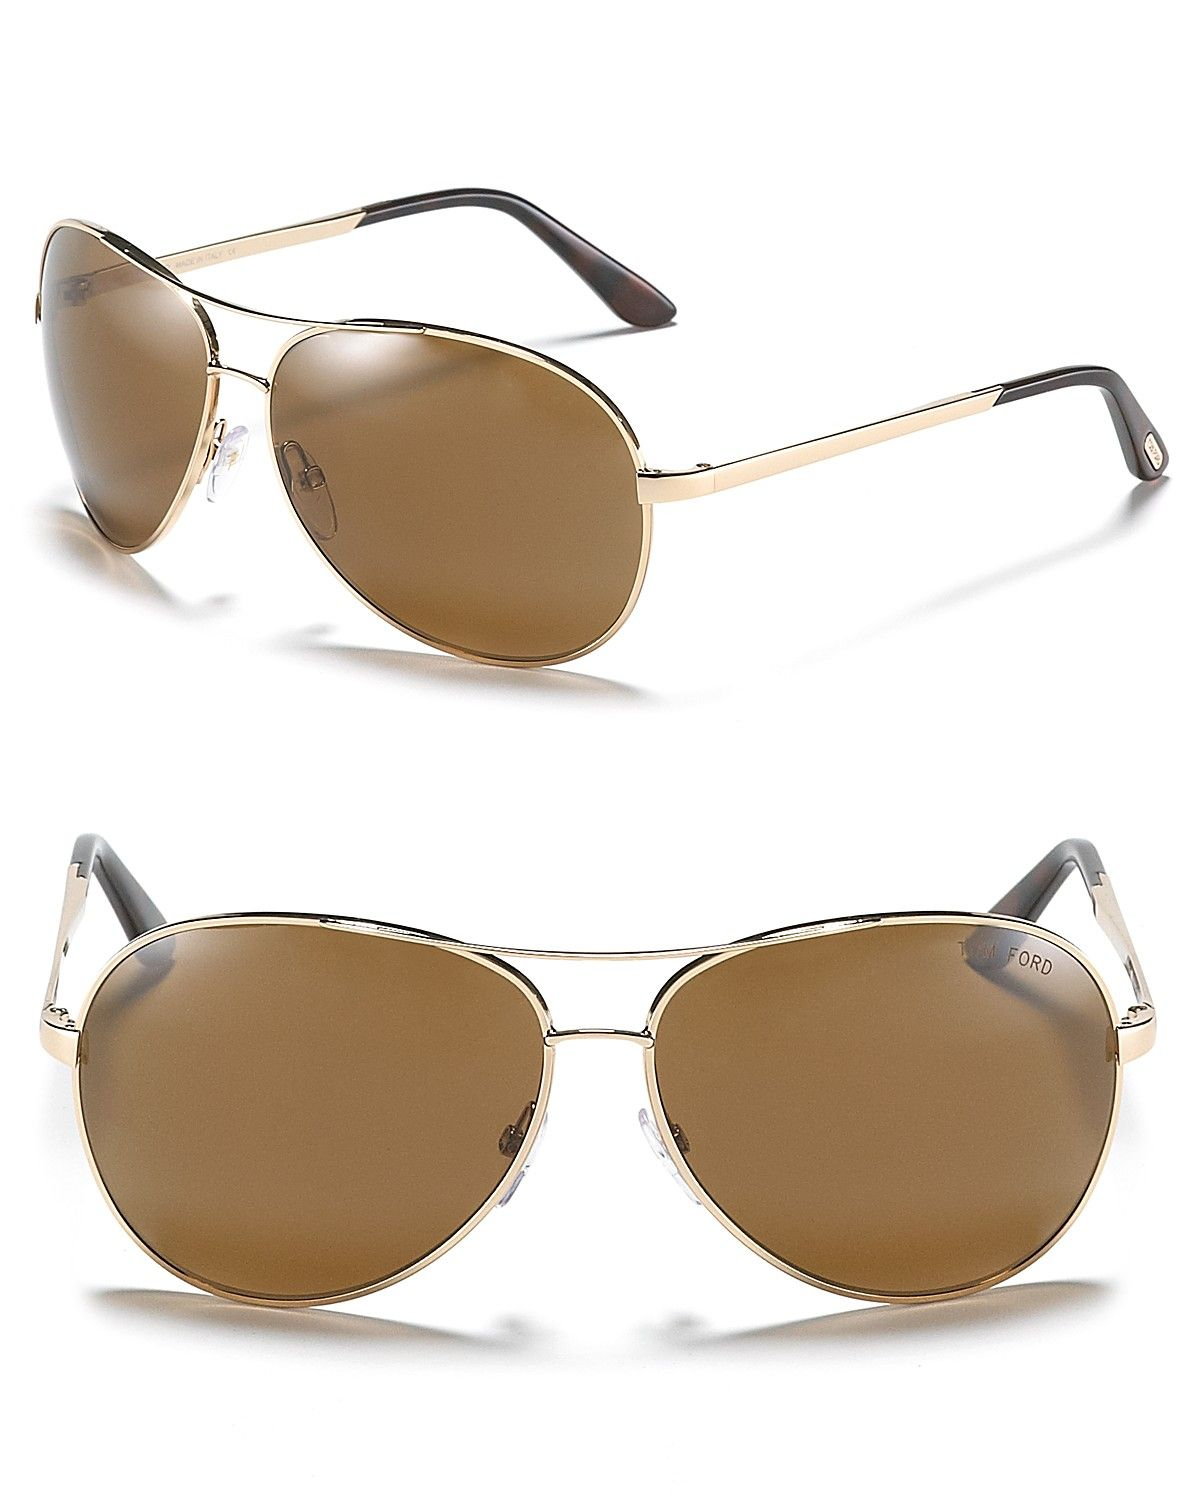 Tom Ford Charles Polarized Sunglasses   Bloomingdale s   shades ... 6d5cfd826d8c